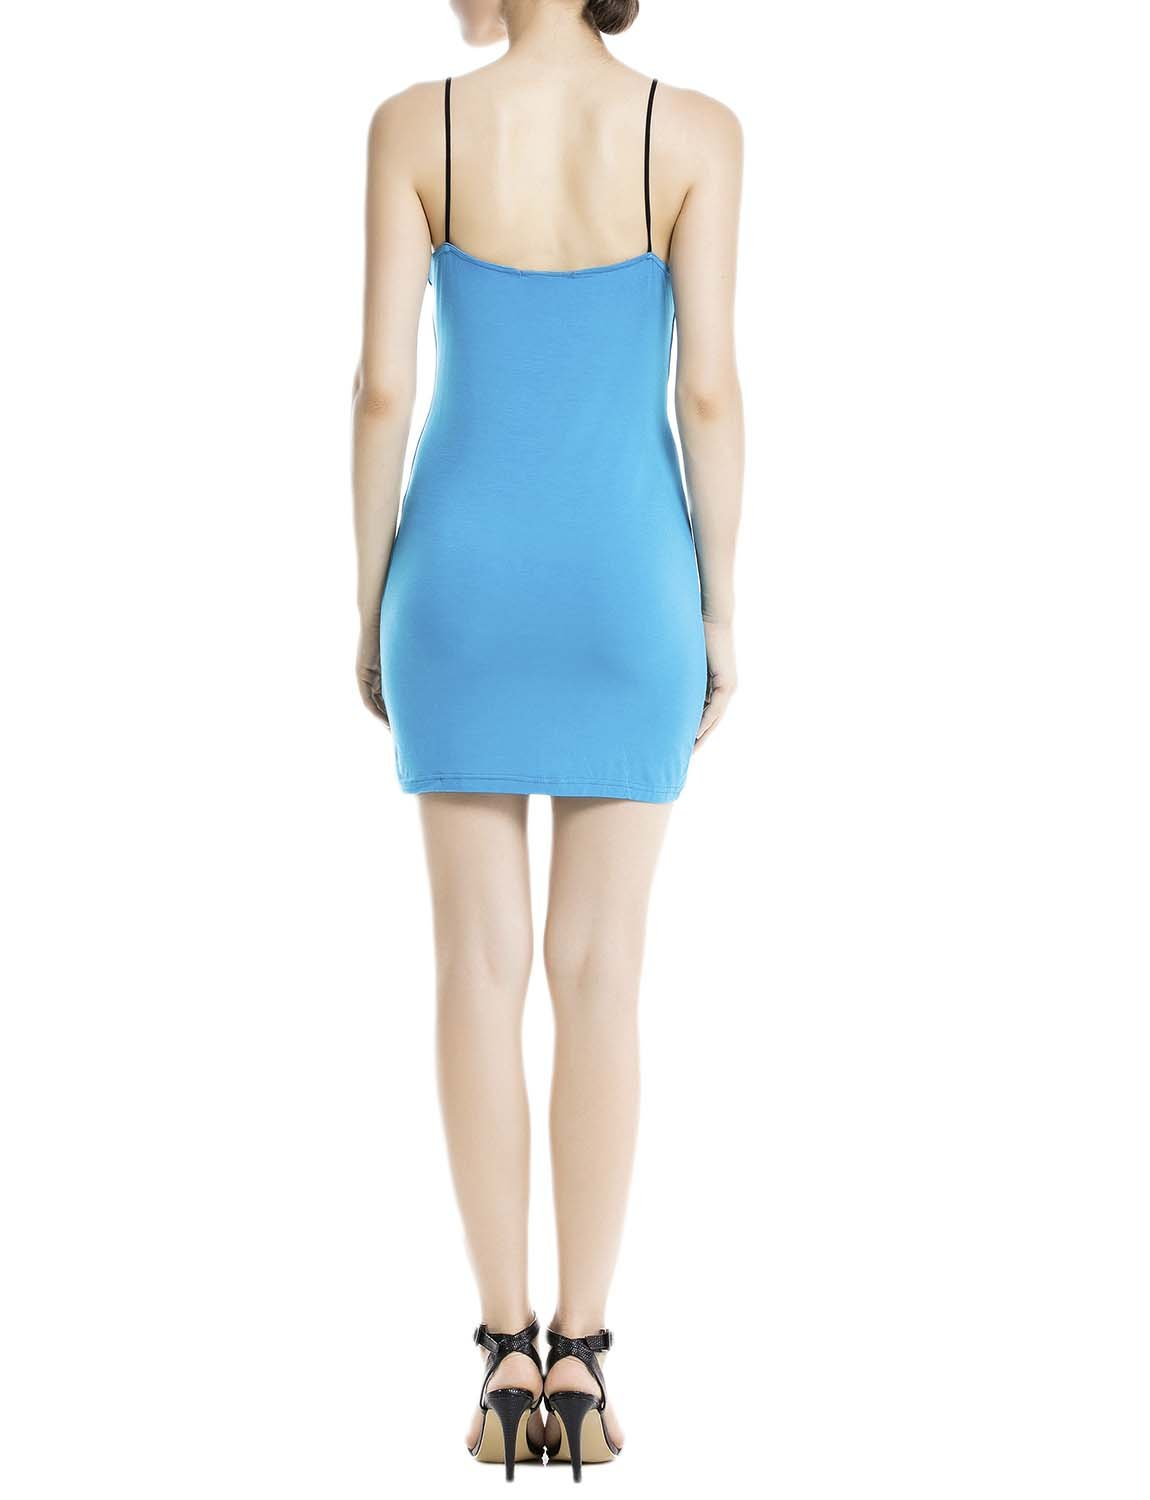 Women's Cotton Slips For Under Dress Spaghetti Strap Mid-Thigh Full Slip, Size: 2XL, Sea Blue